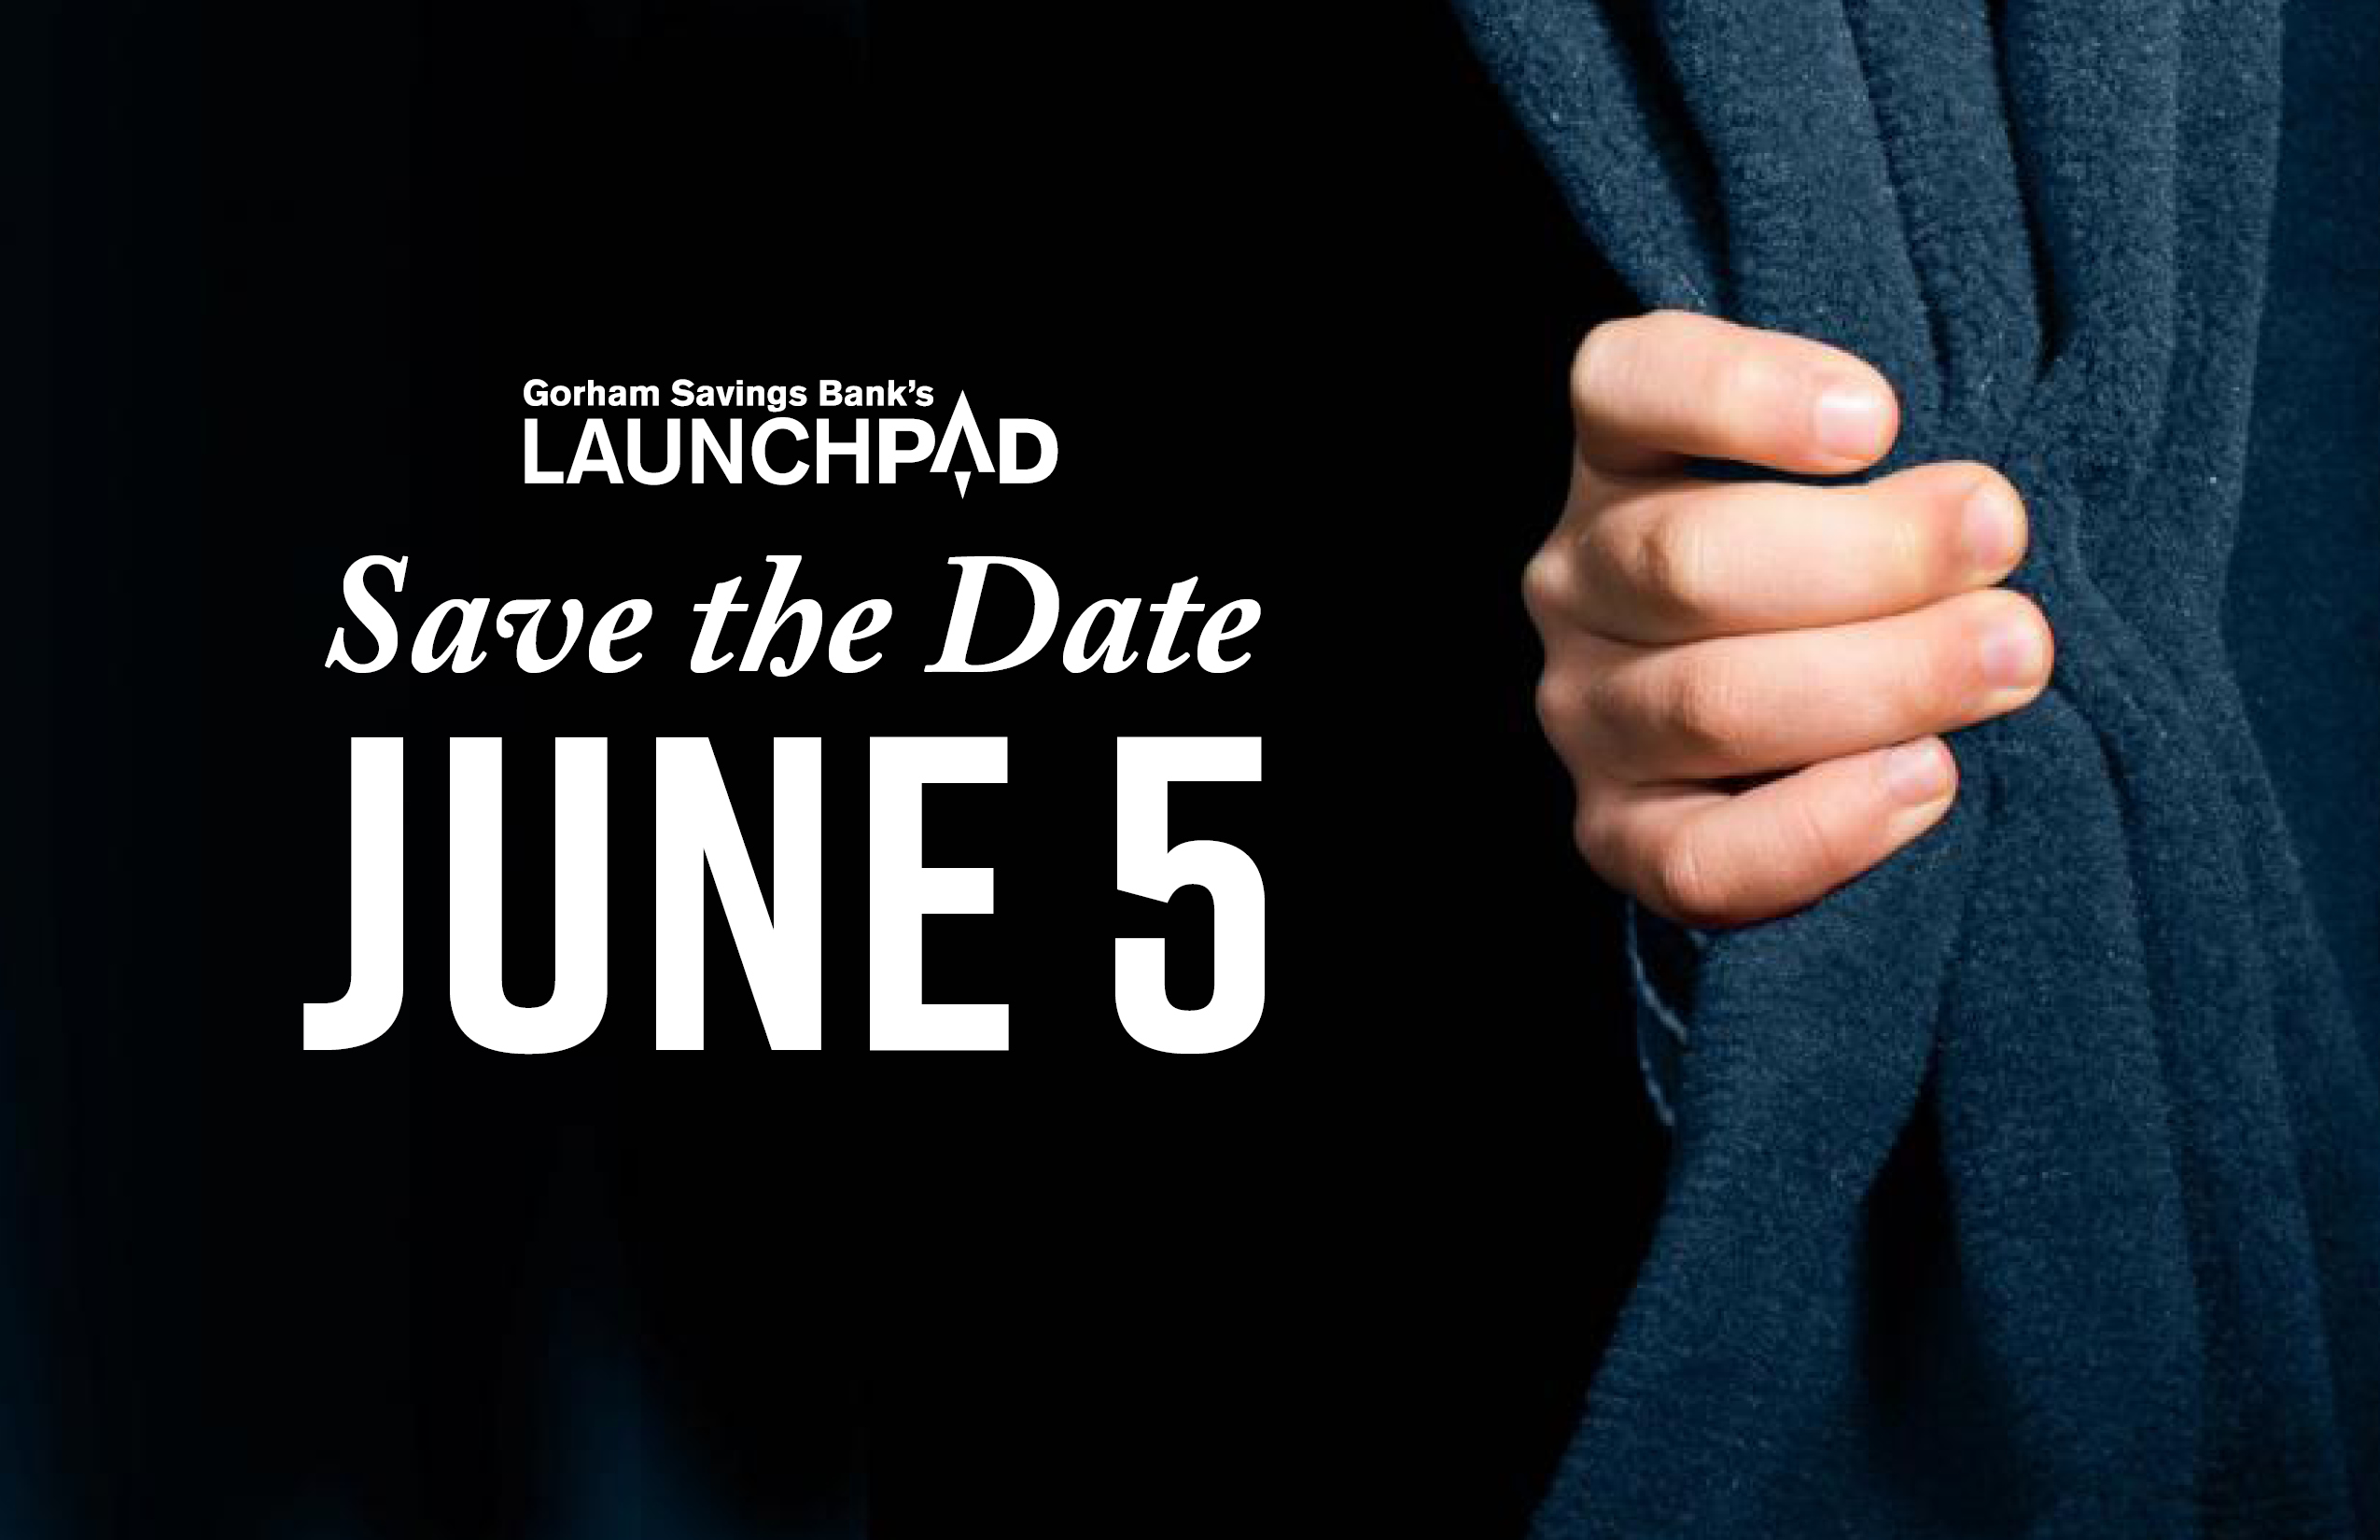 LaunchPad 2018 Save the Date June 5 advertisement